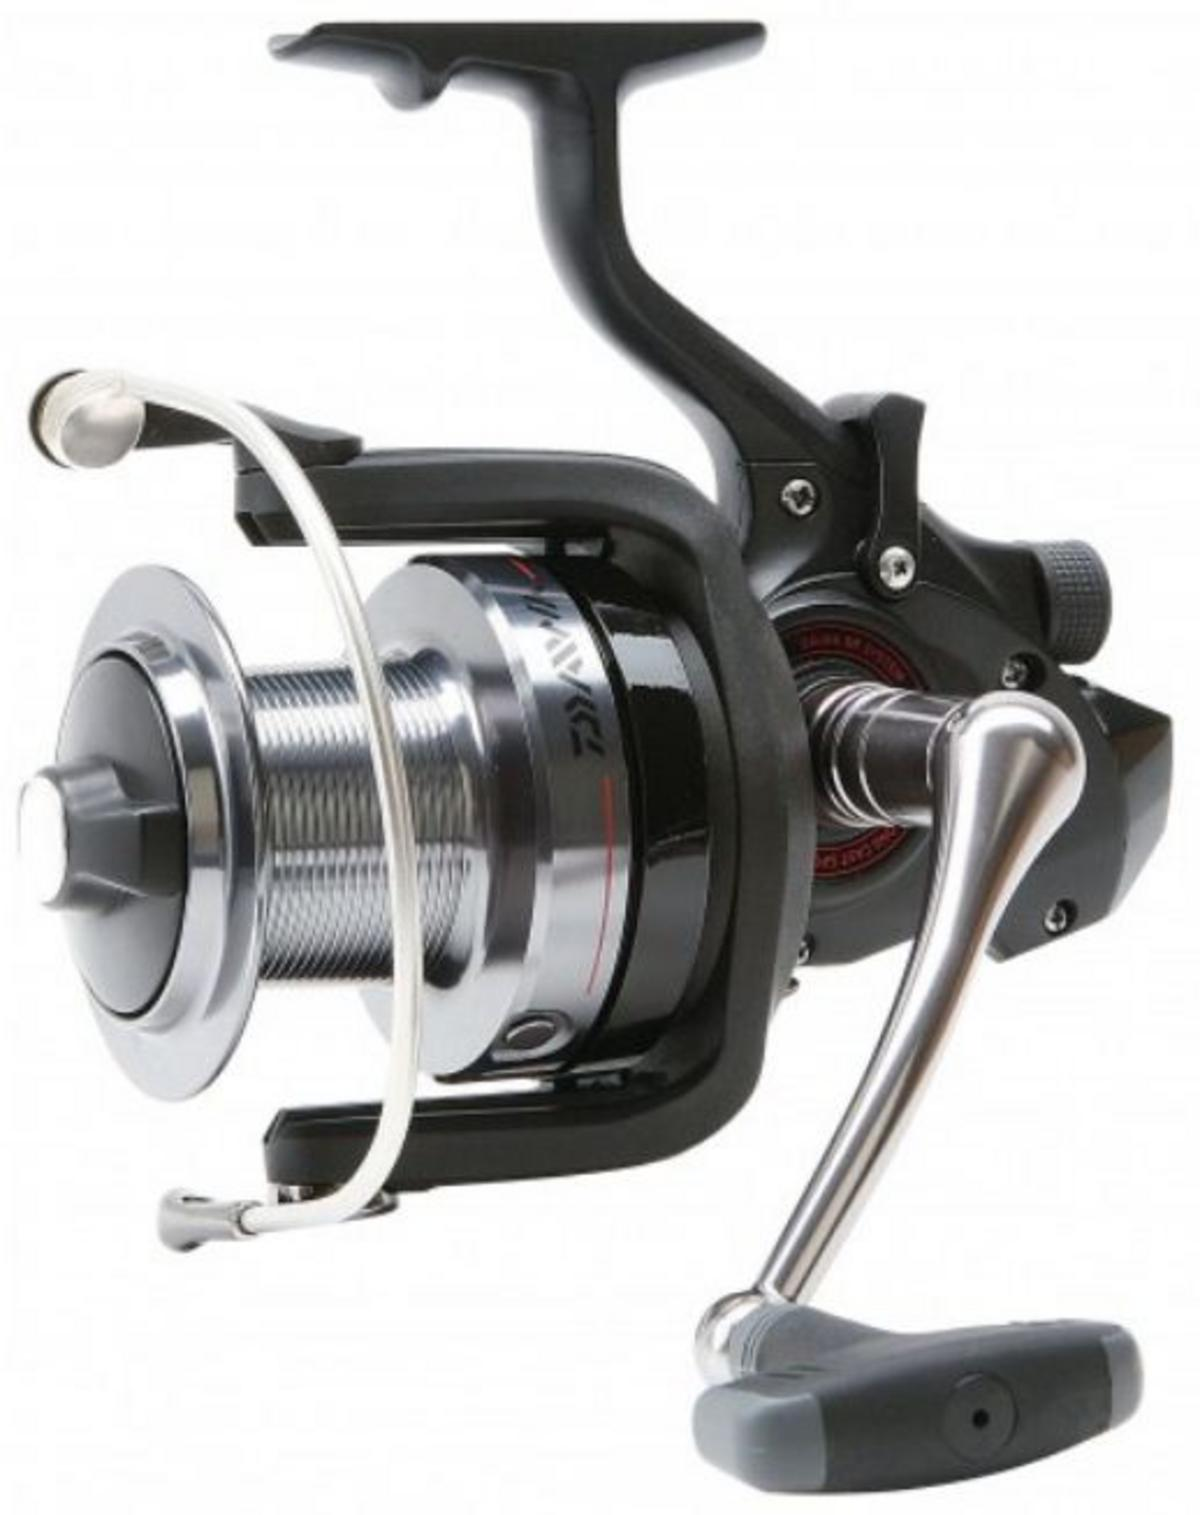 SPECIAL OFFER DAIWA WINDCAST BR LD 5000 BIG PIT BAITRUNNER